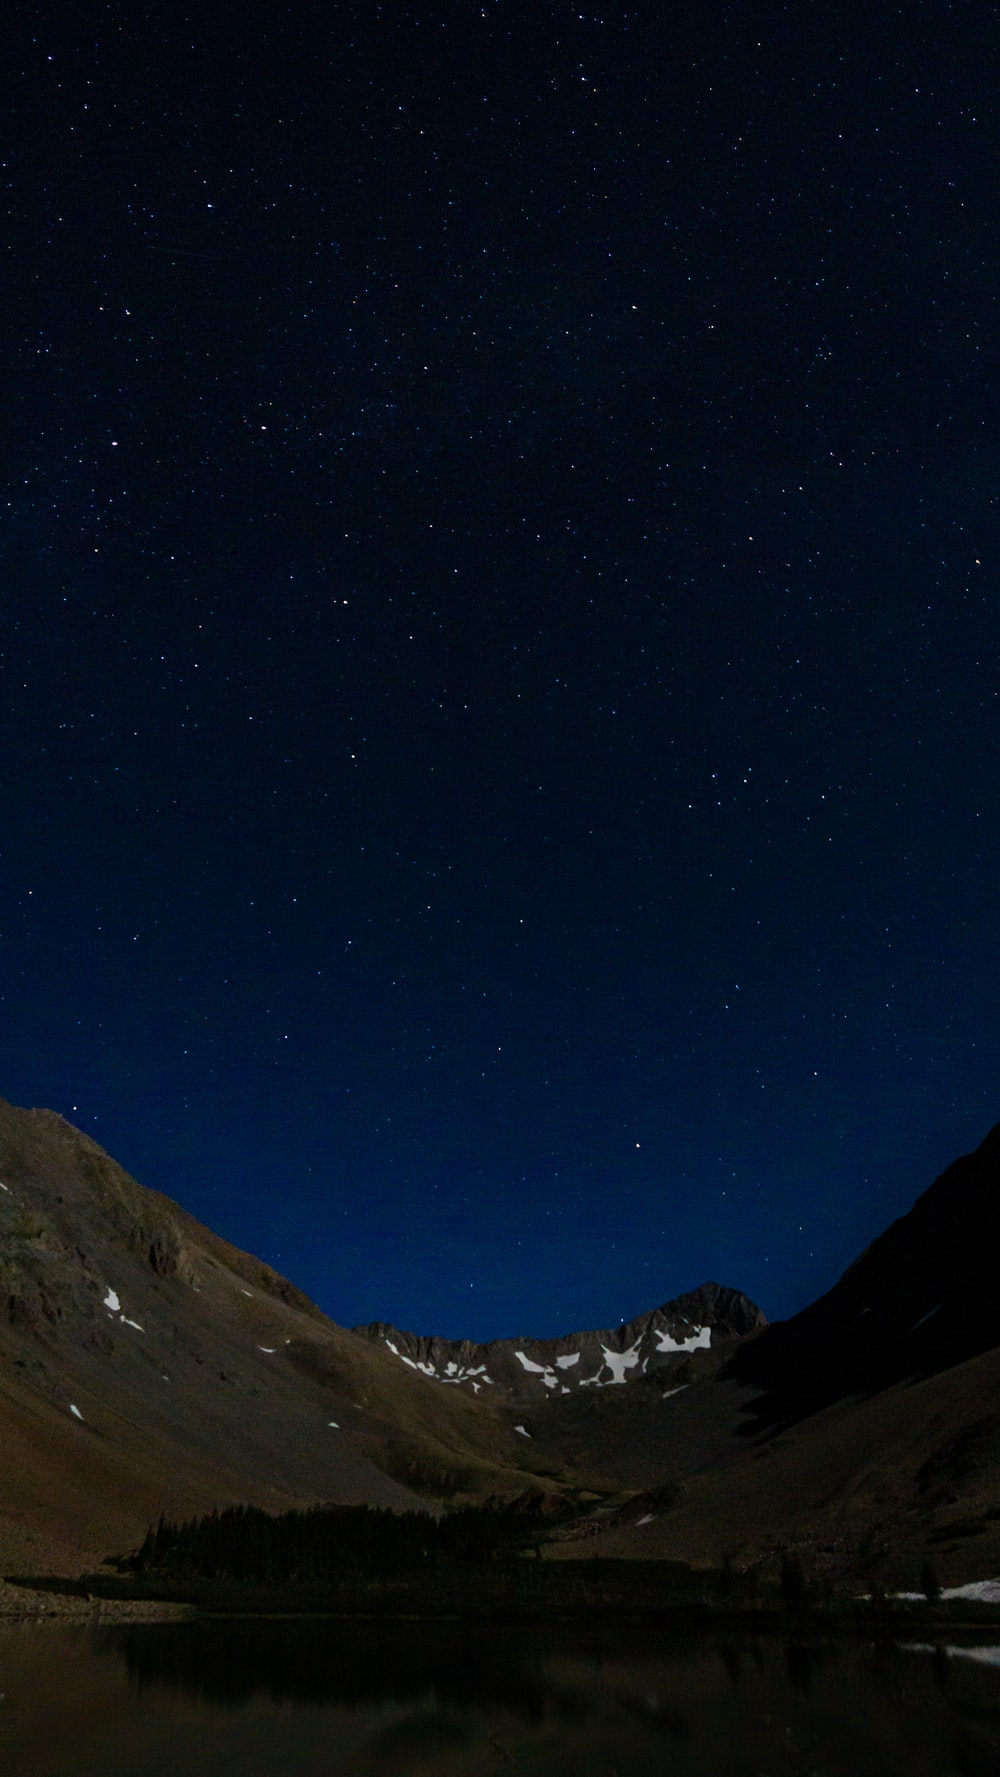 brown and green mountains under blue sky during night time